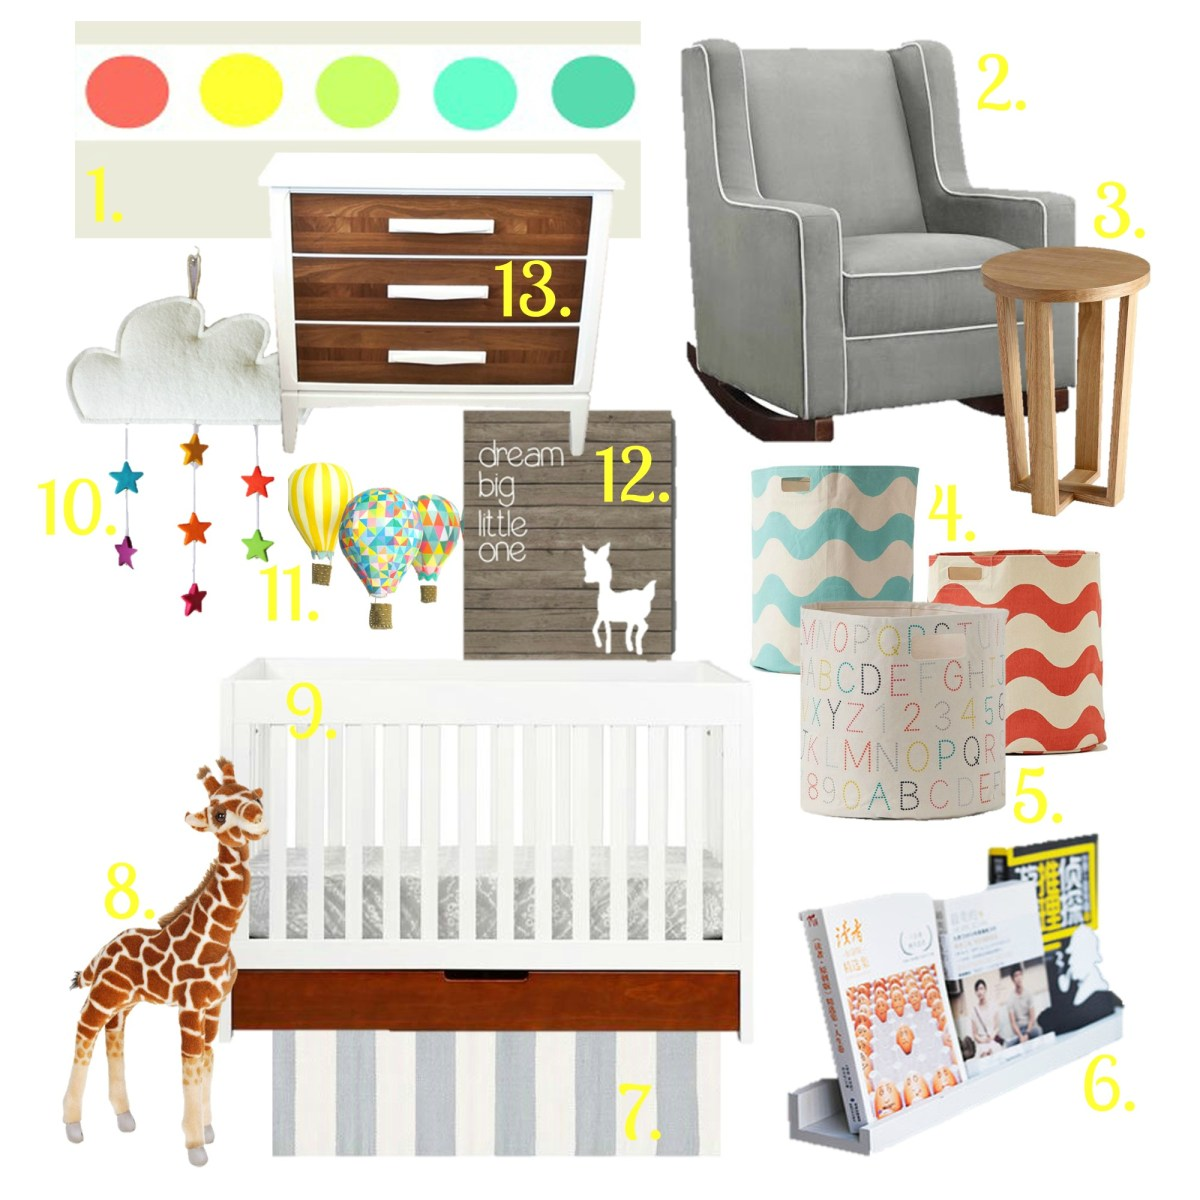 Beginning Beanie's Nursery - Mood Board and Plans